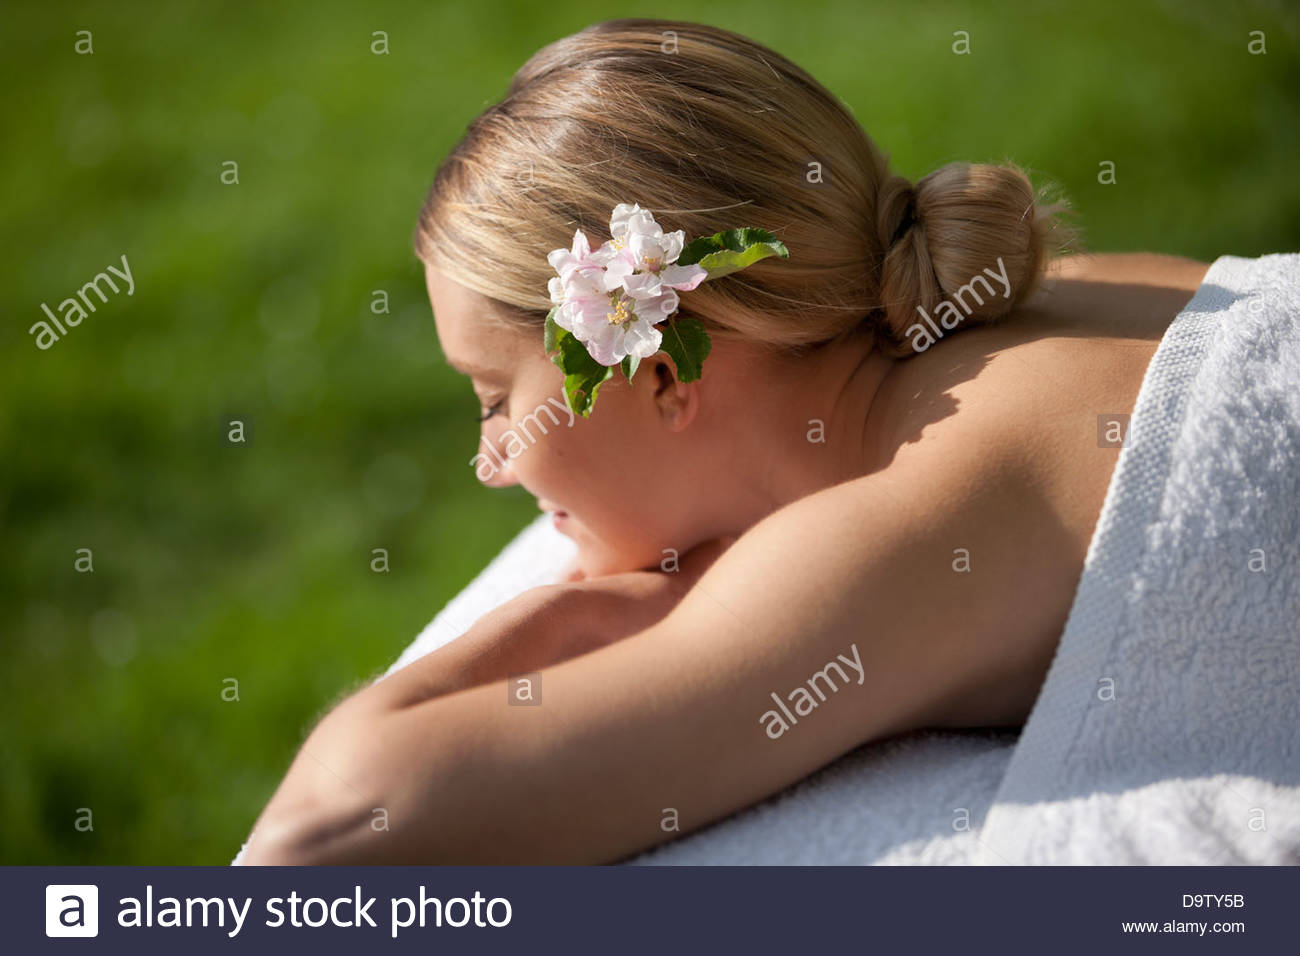 A young woman laying on a massage table with apple blossom in her hair, eyes closed Stock Photo